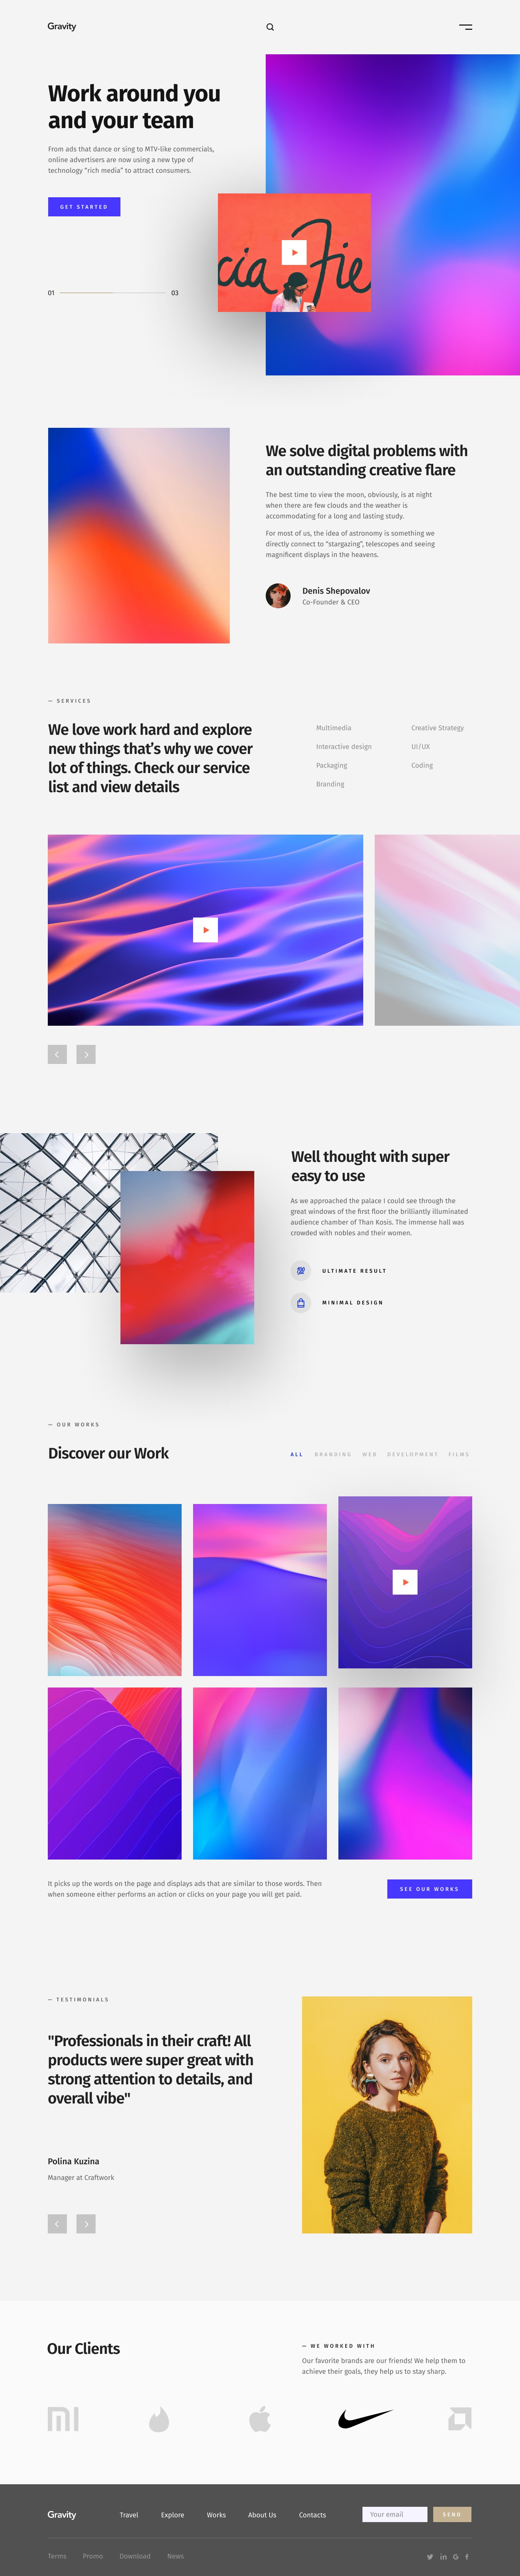 Gravity Agency Portfolio Template - Agency Portfolio Template based on Bootstrap 4 grid